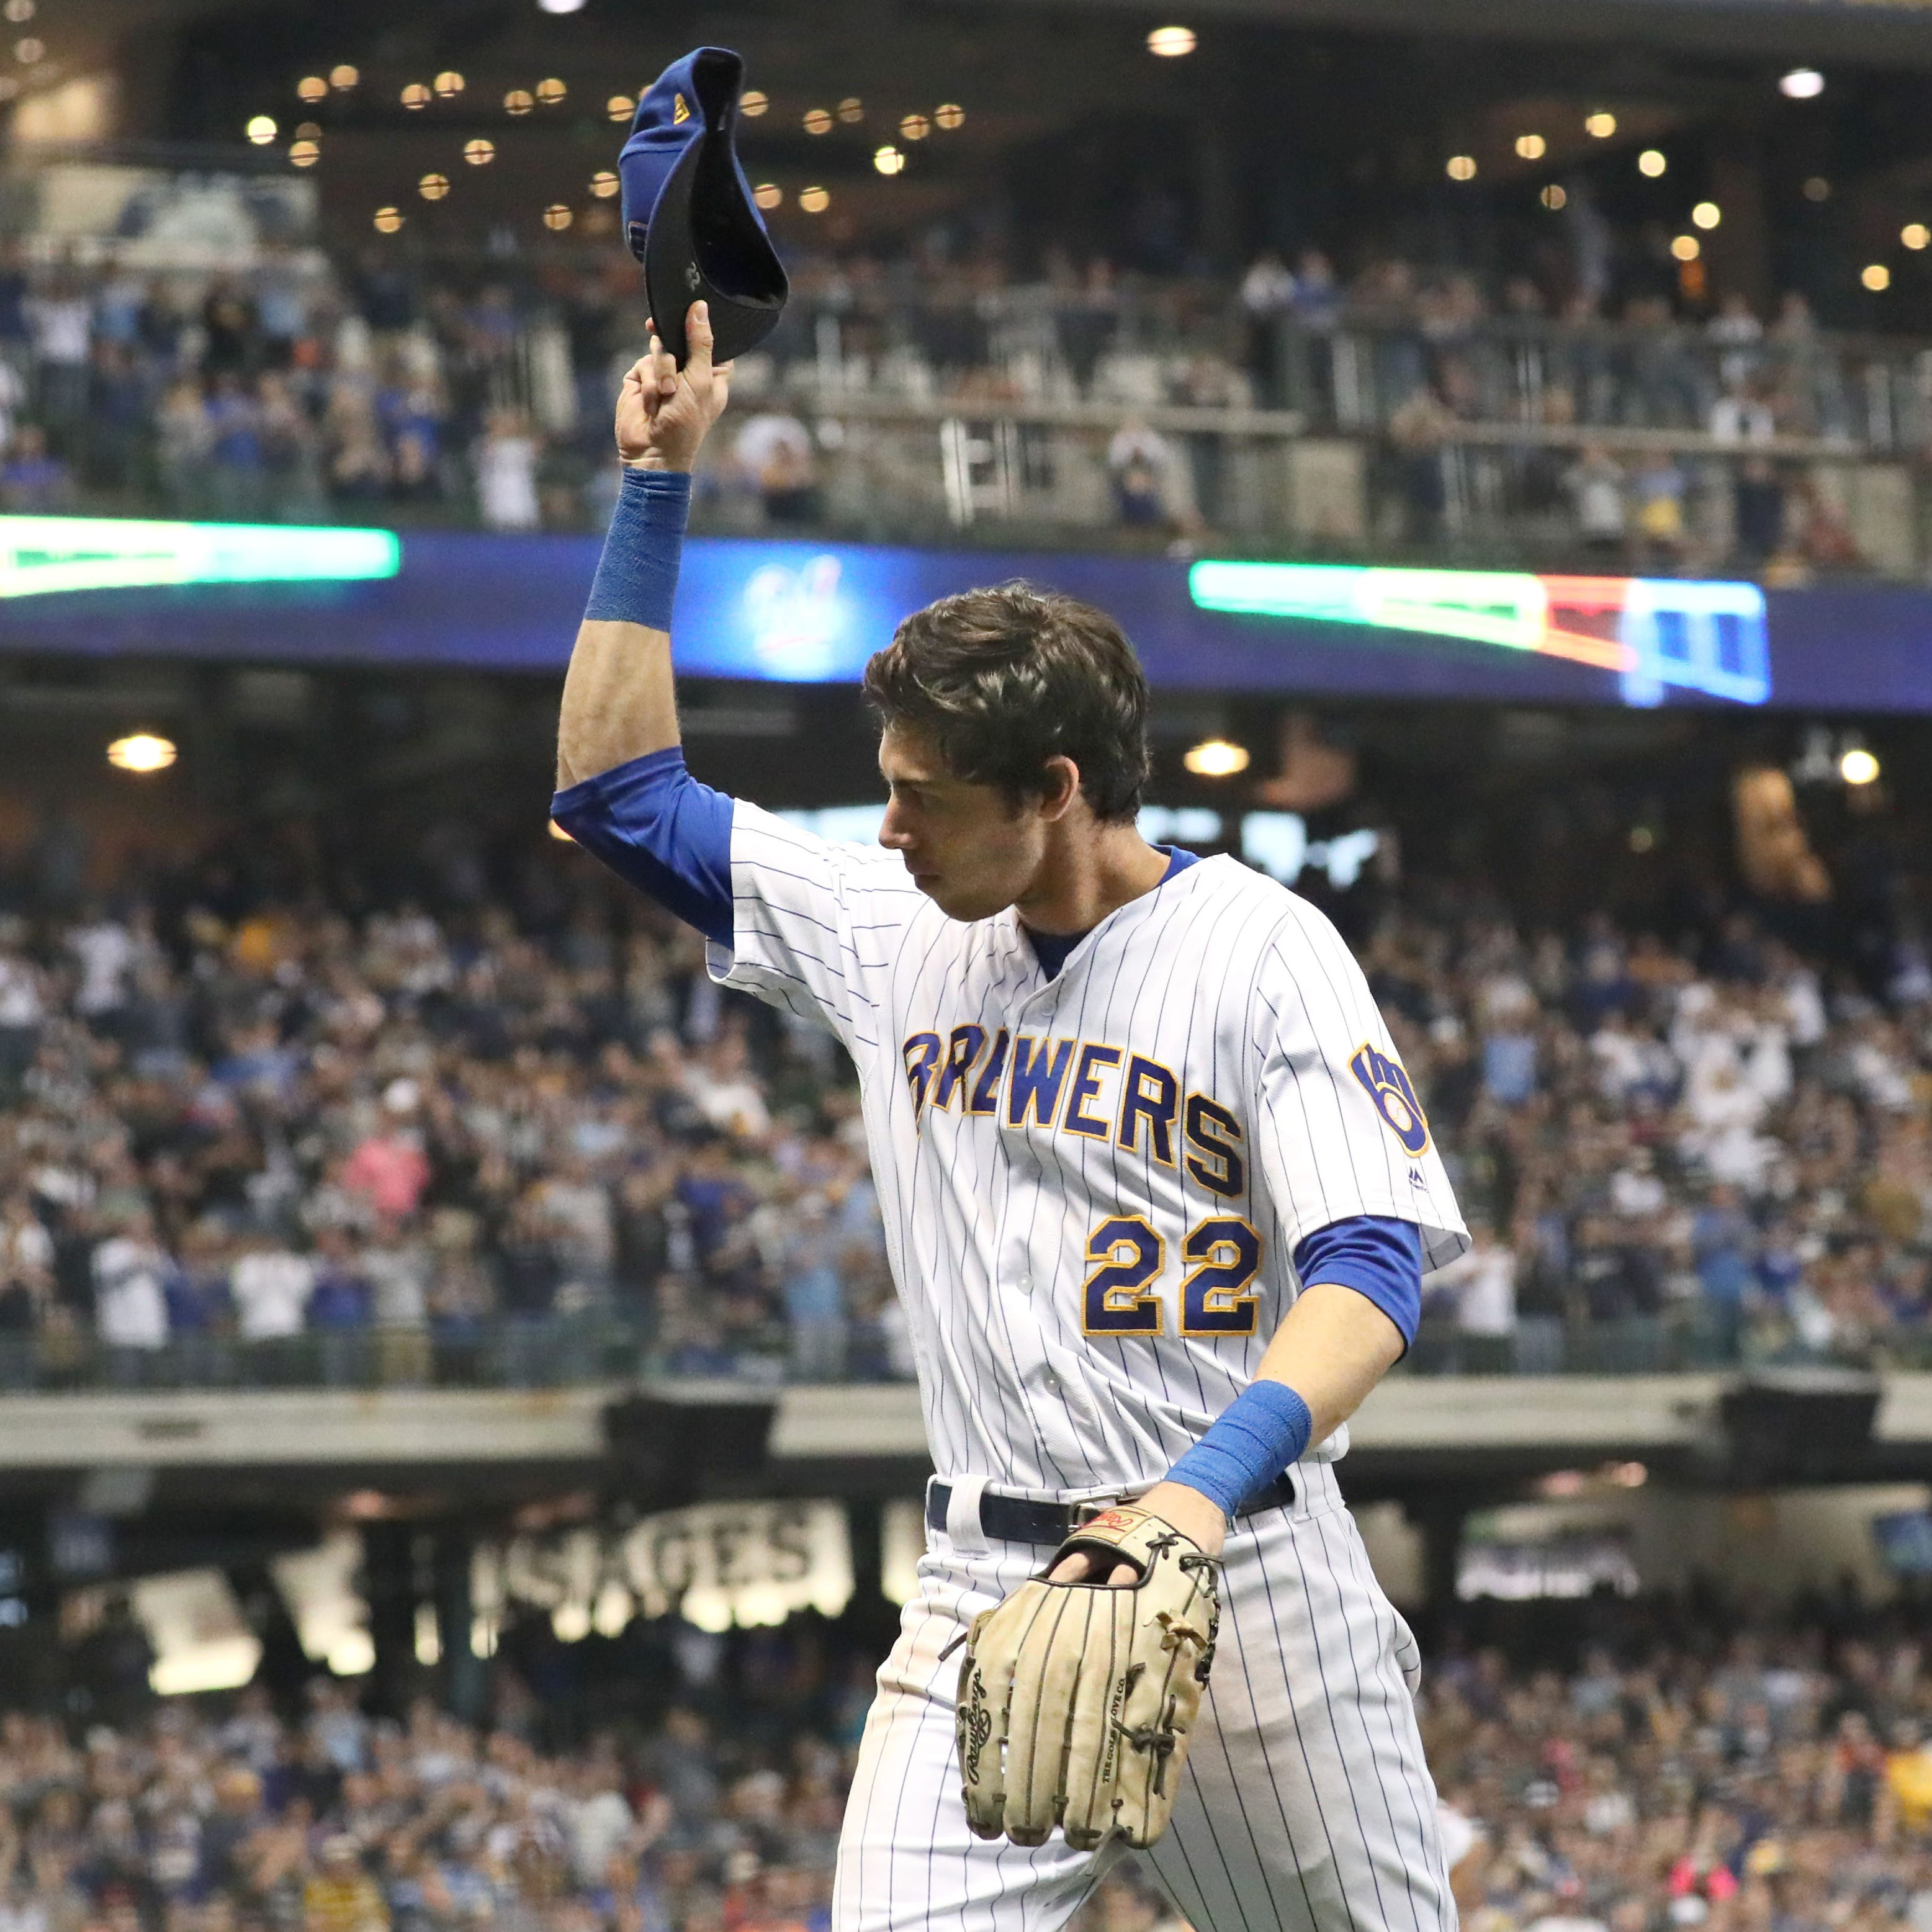 Right field: Christian Yelich has set the bar ridiculously high. What can he do for an encore?